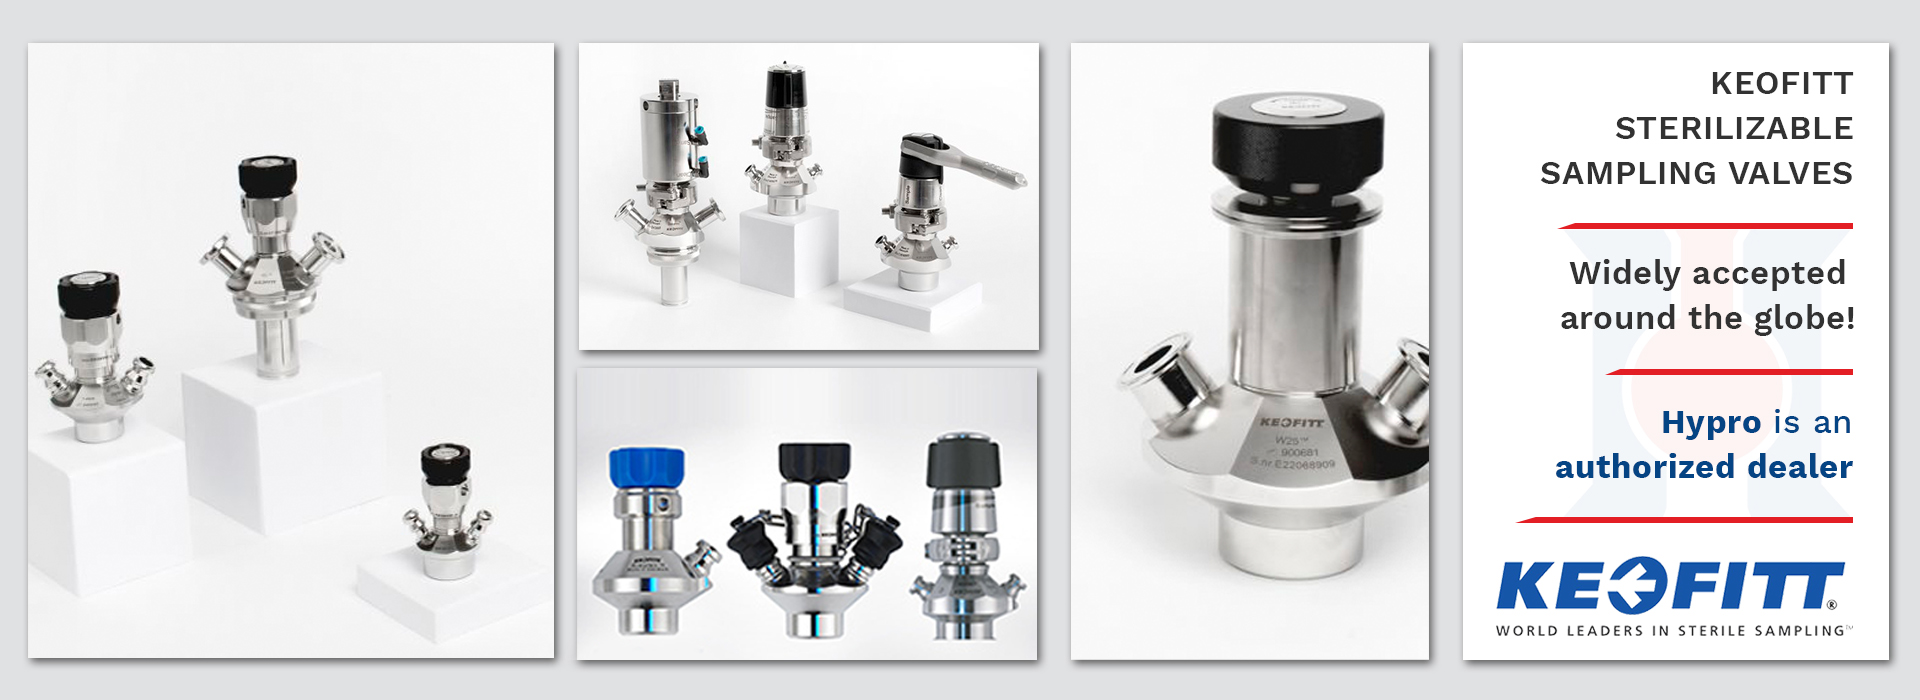 Keofitt Sampling Valves Dealer